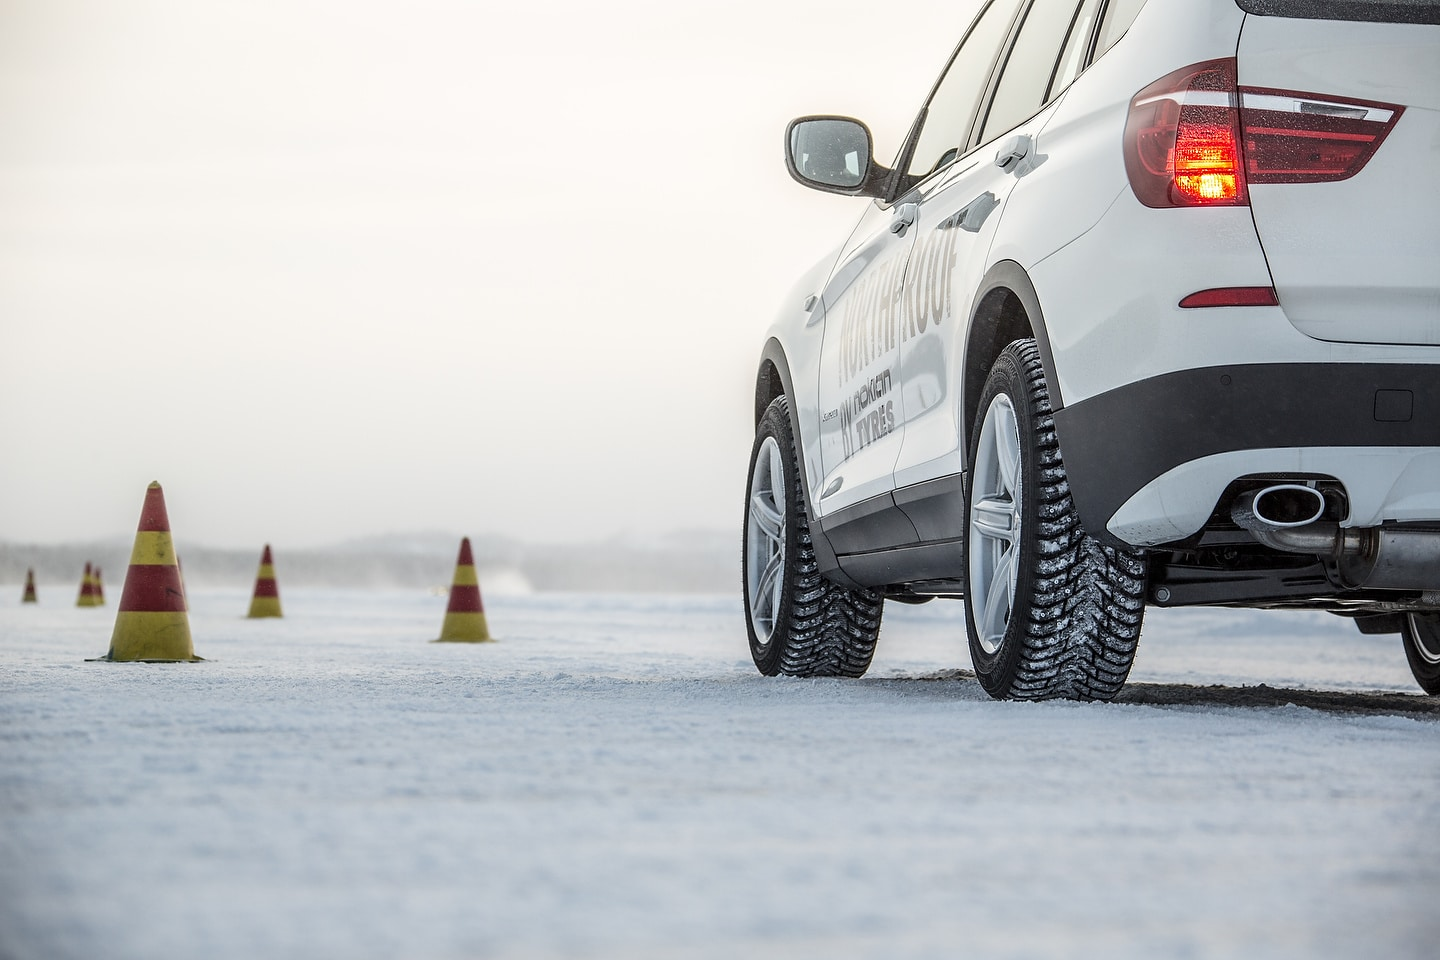 Winter tire testing with a BMW X3